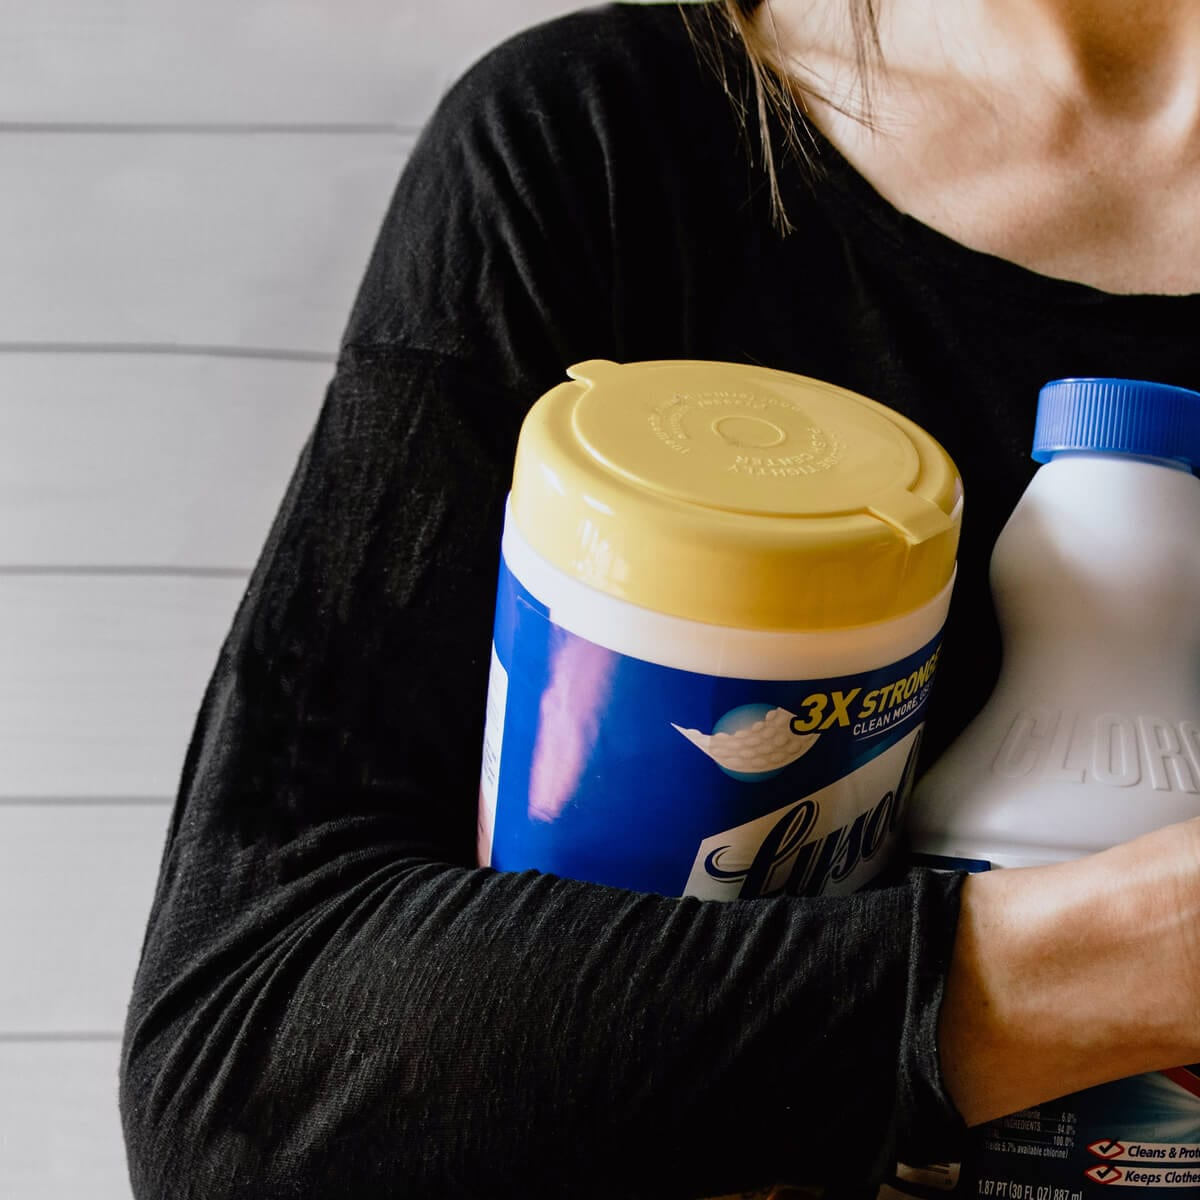 woman holding a bottle of bleach and a container of lysol disinfectant wipes